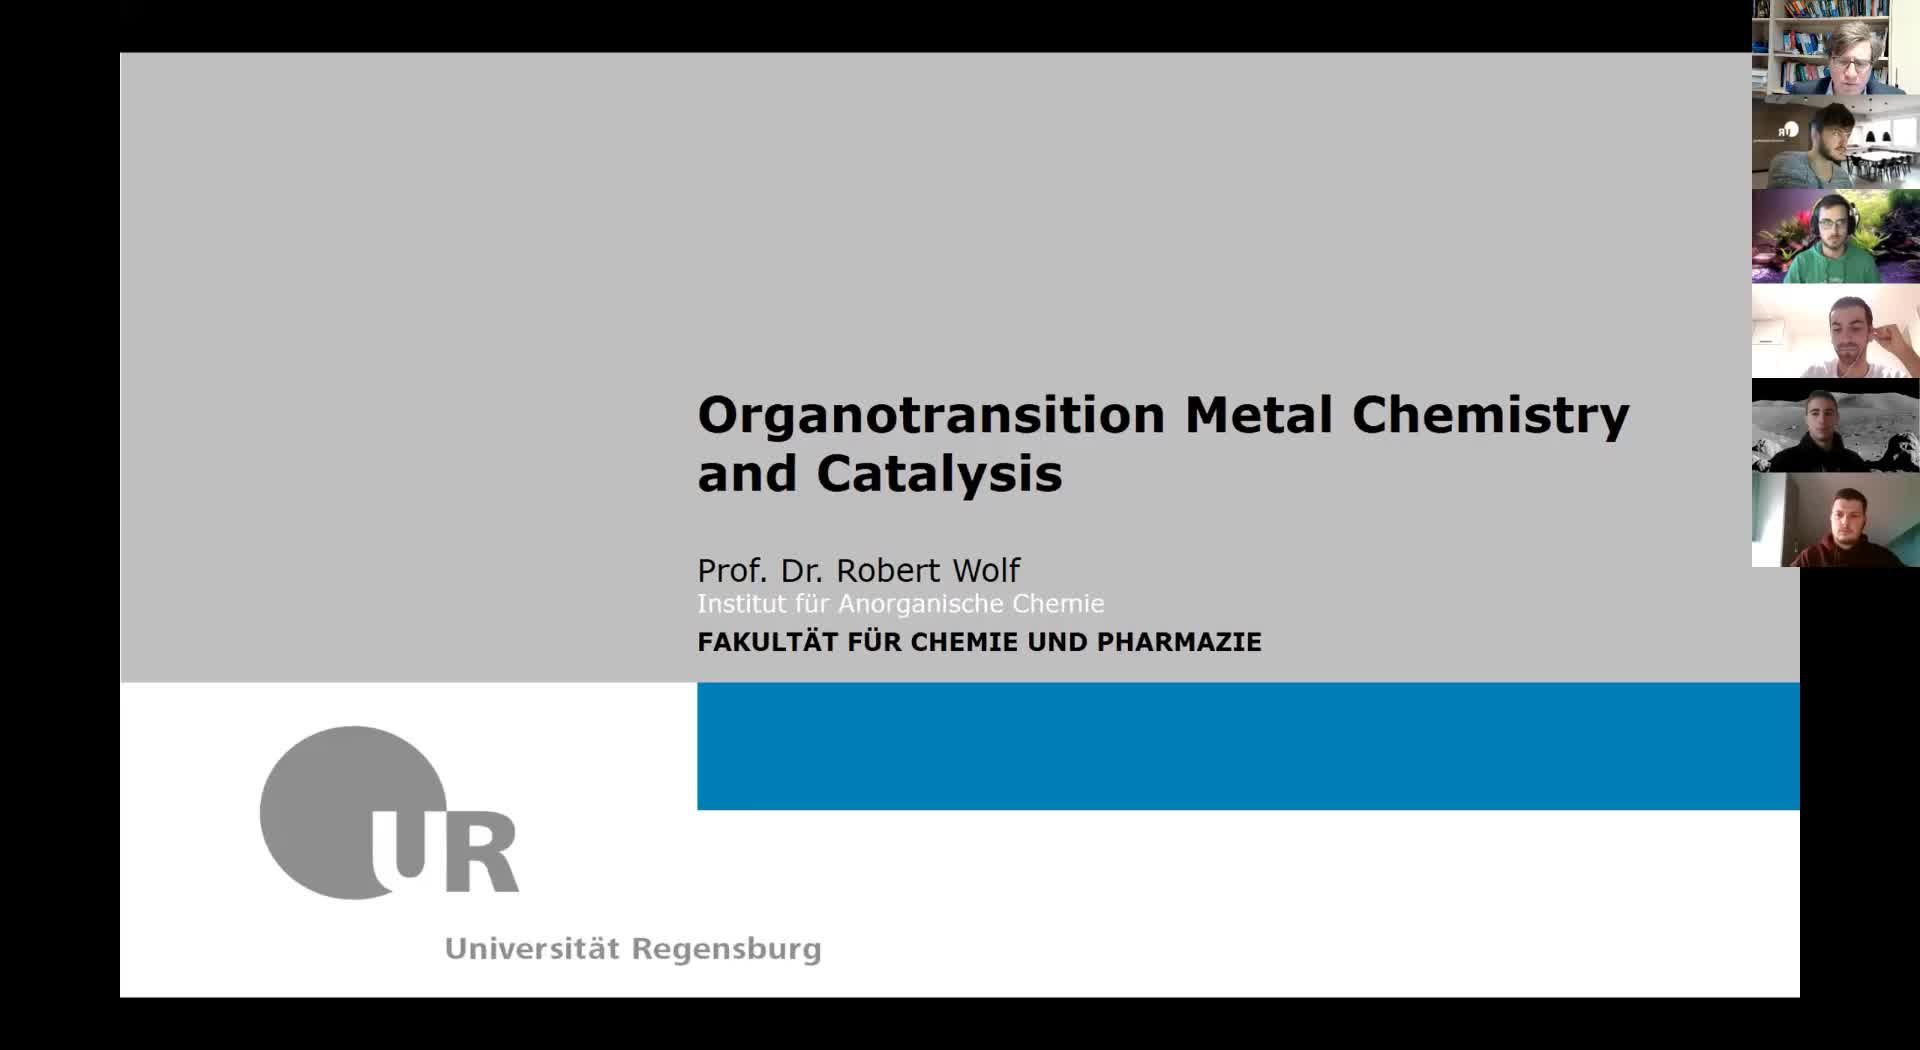 Organotransitionmetal Chemistry and Catalysis, lecture 2, 09/11/20